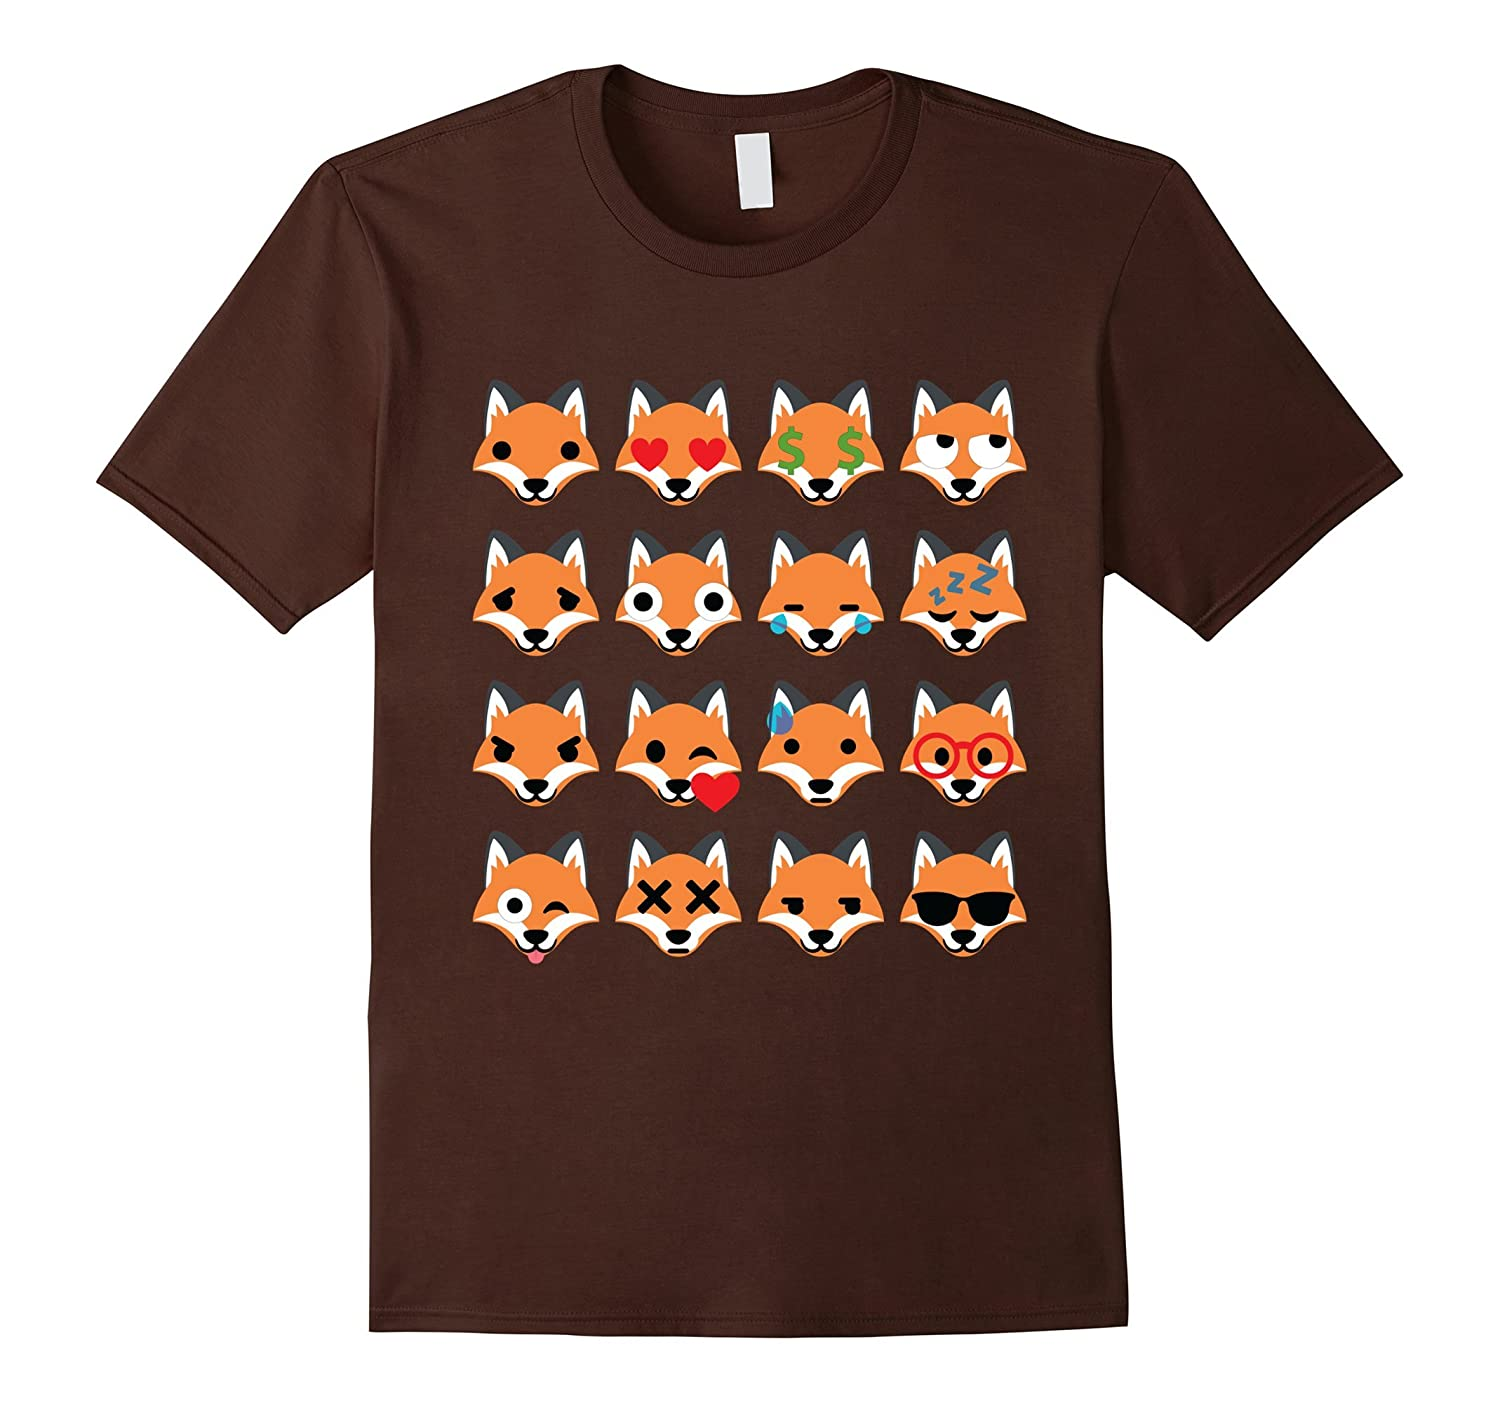 Fox Emoji Many Face Emotion Shirt T-Shirt Tee